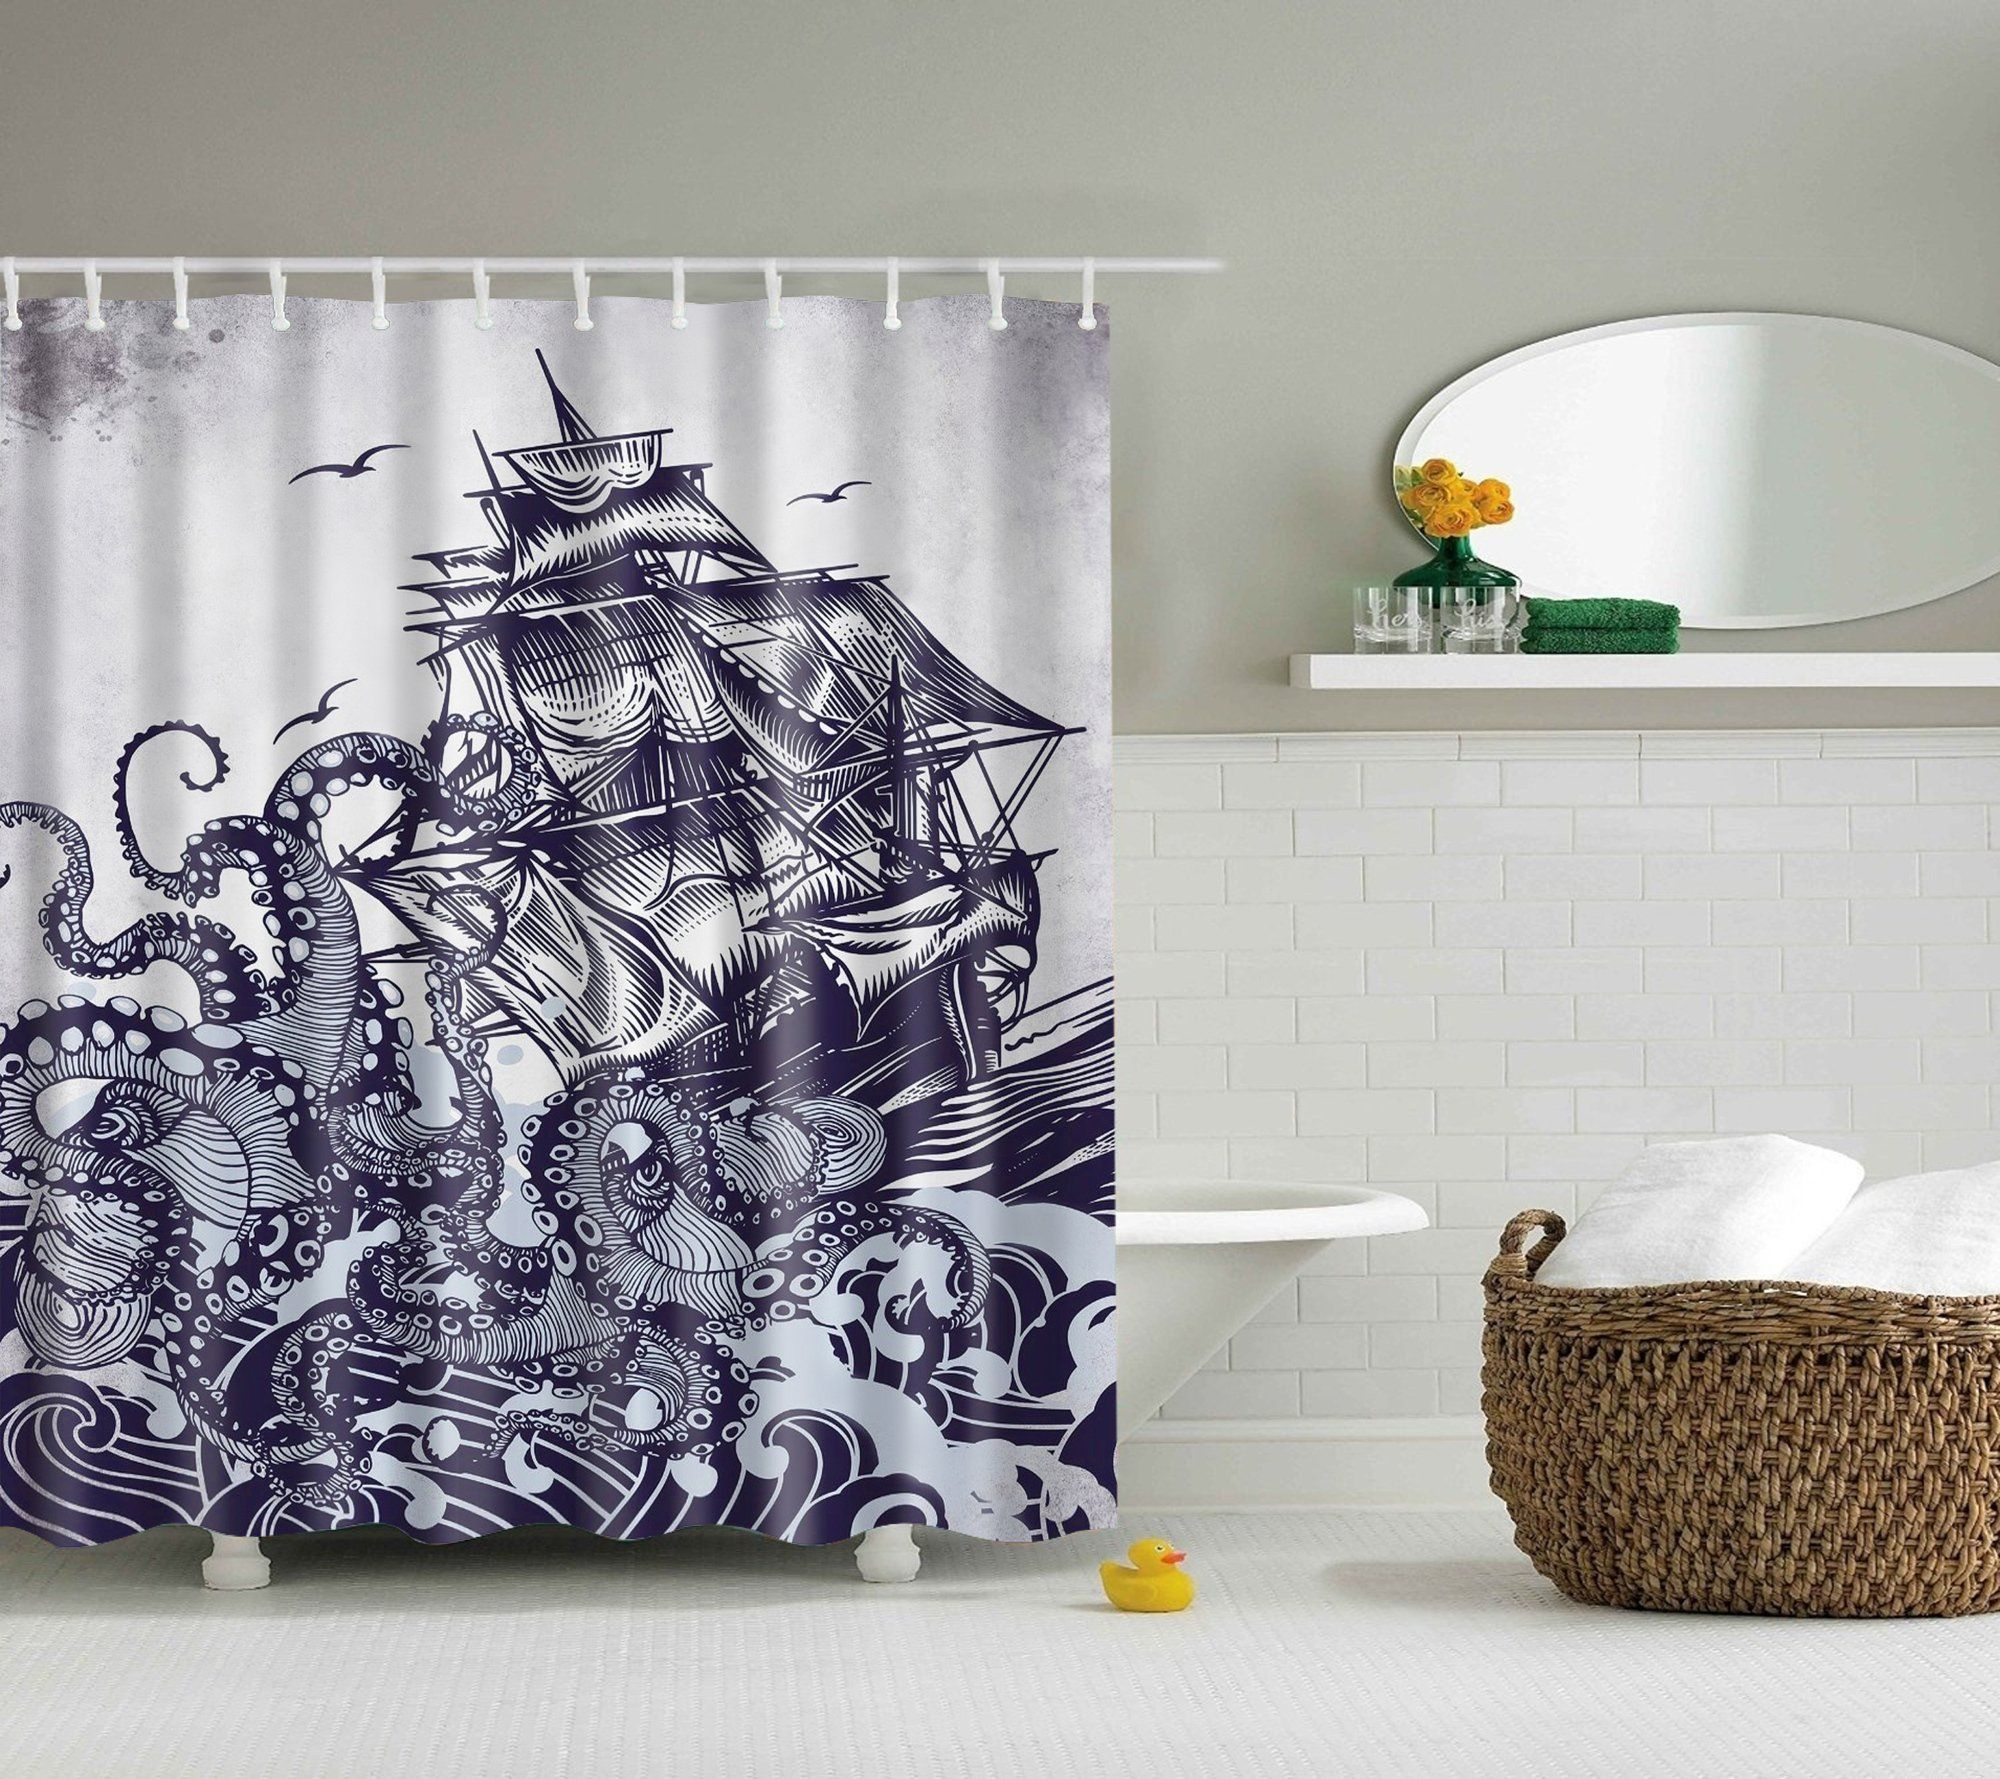 Awesome Kraken With Sailboat Octopus Shower Curtain Octopus